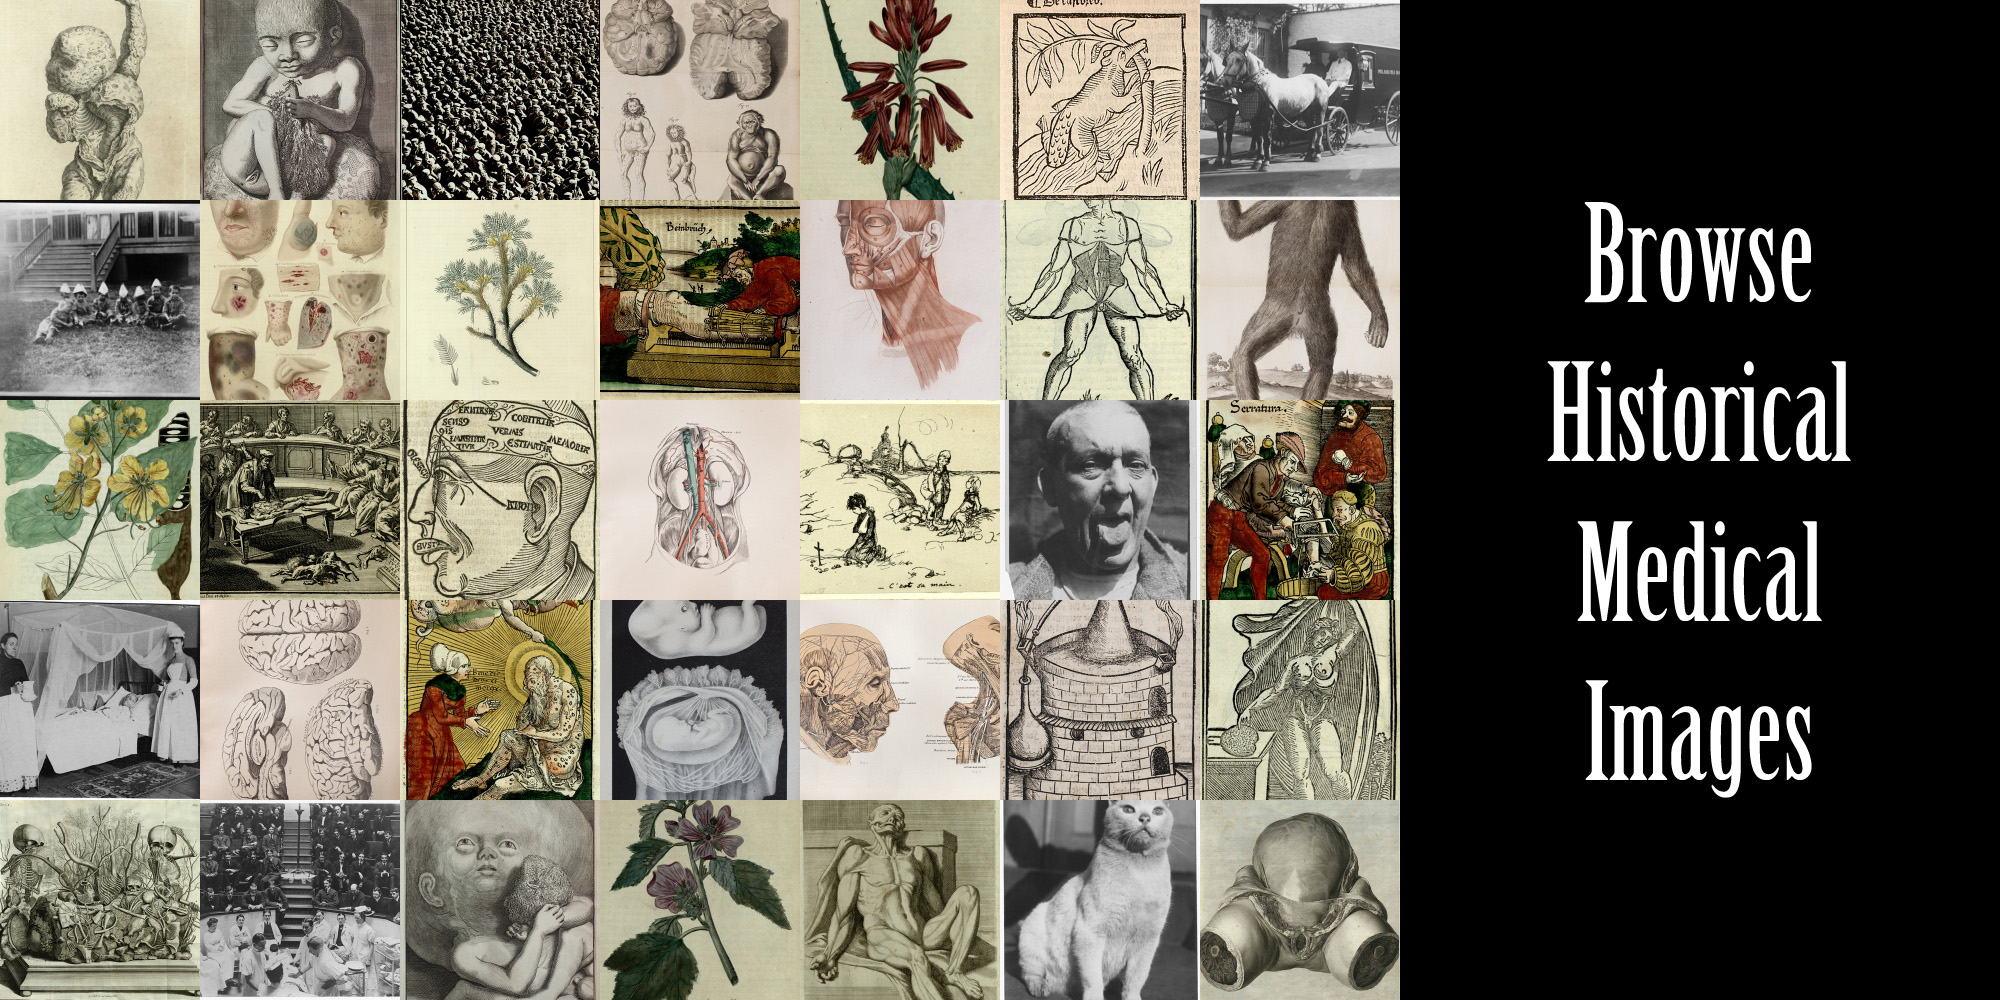 Browse Images from the History of Medicine